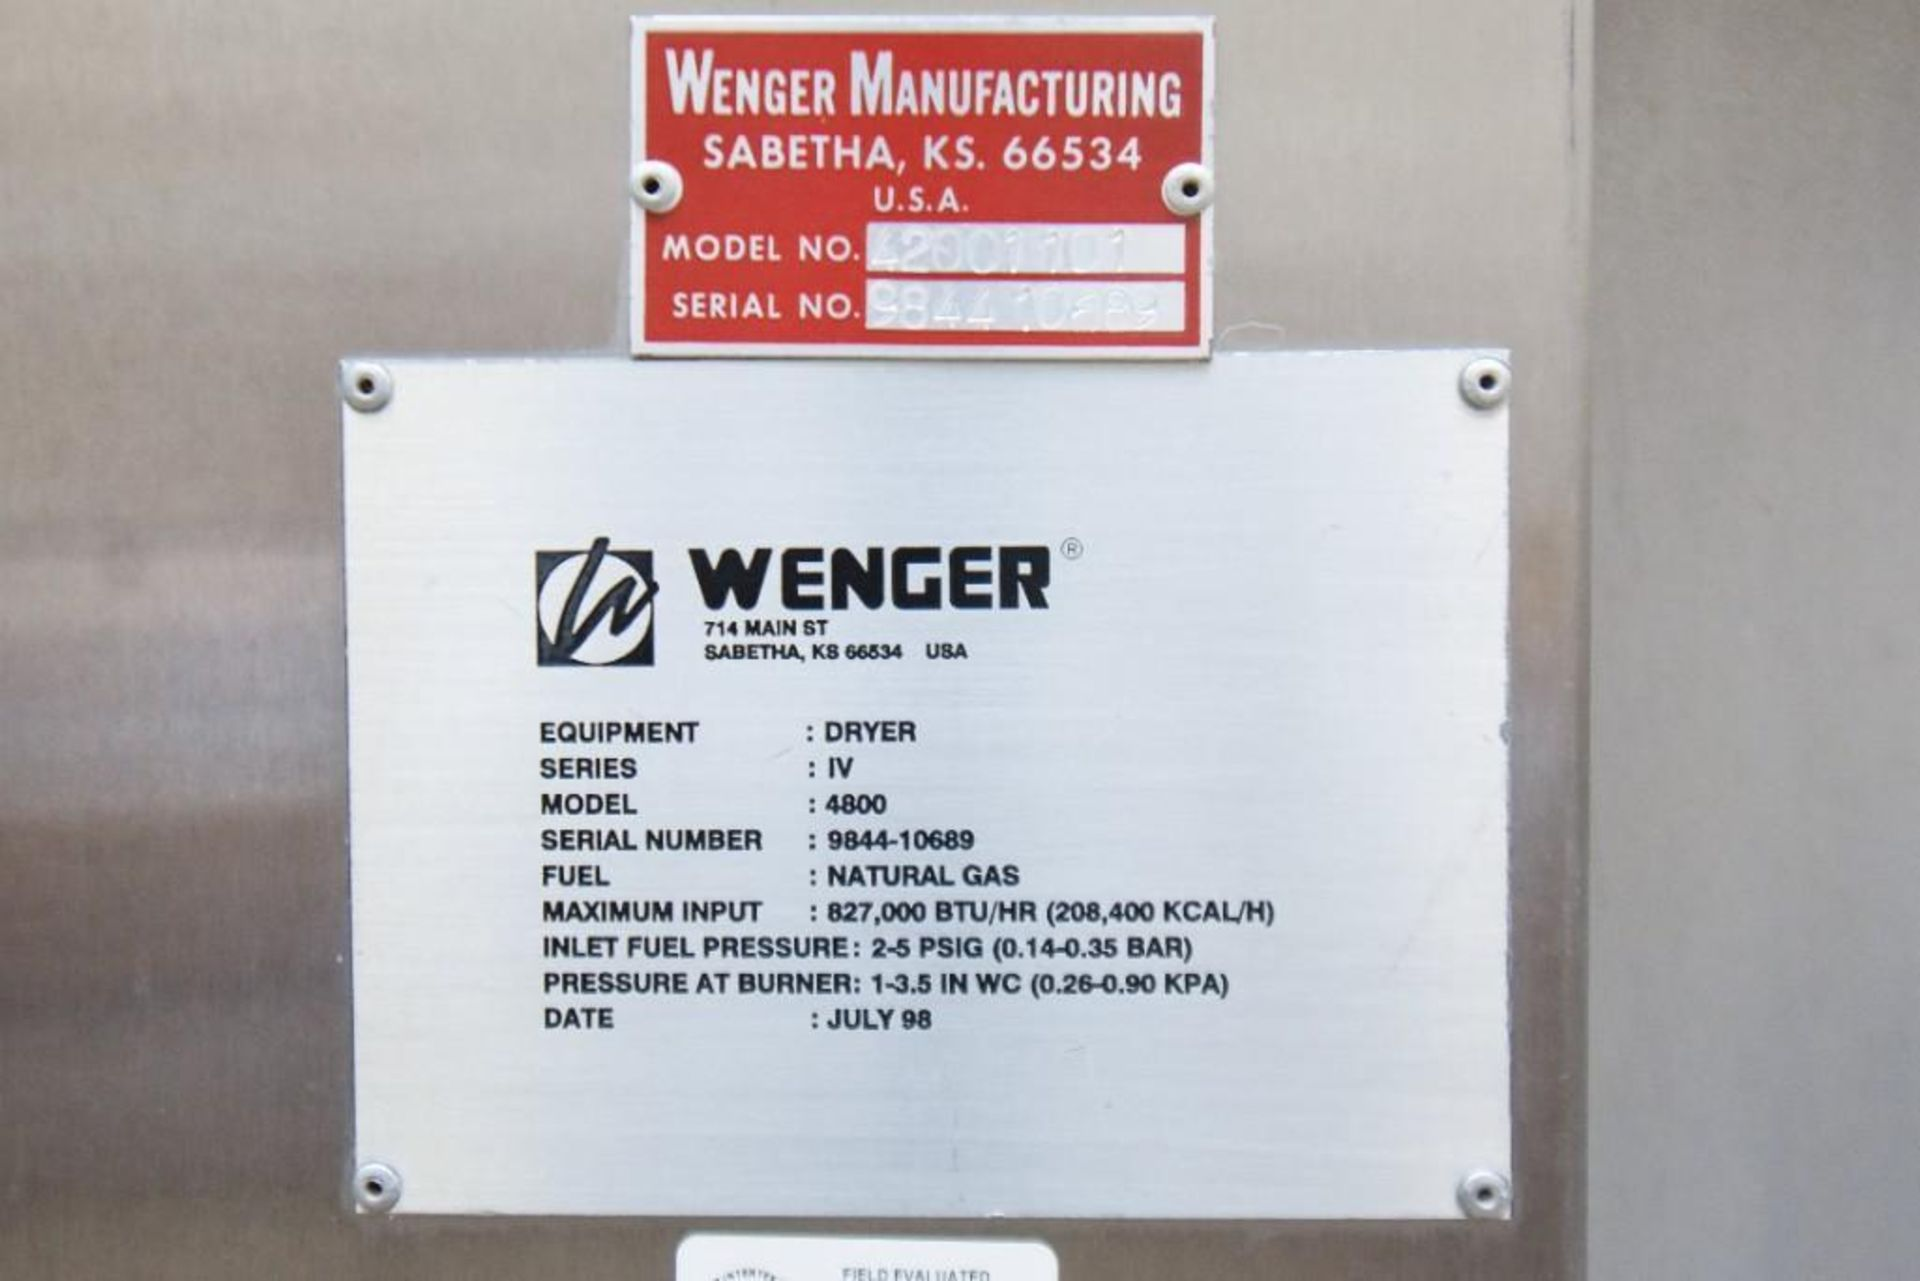 Wenger Dryer Oven #1 4800 - Image 8 of 8